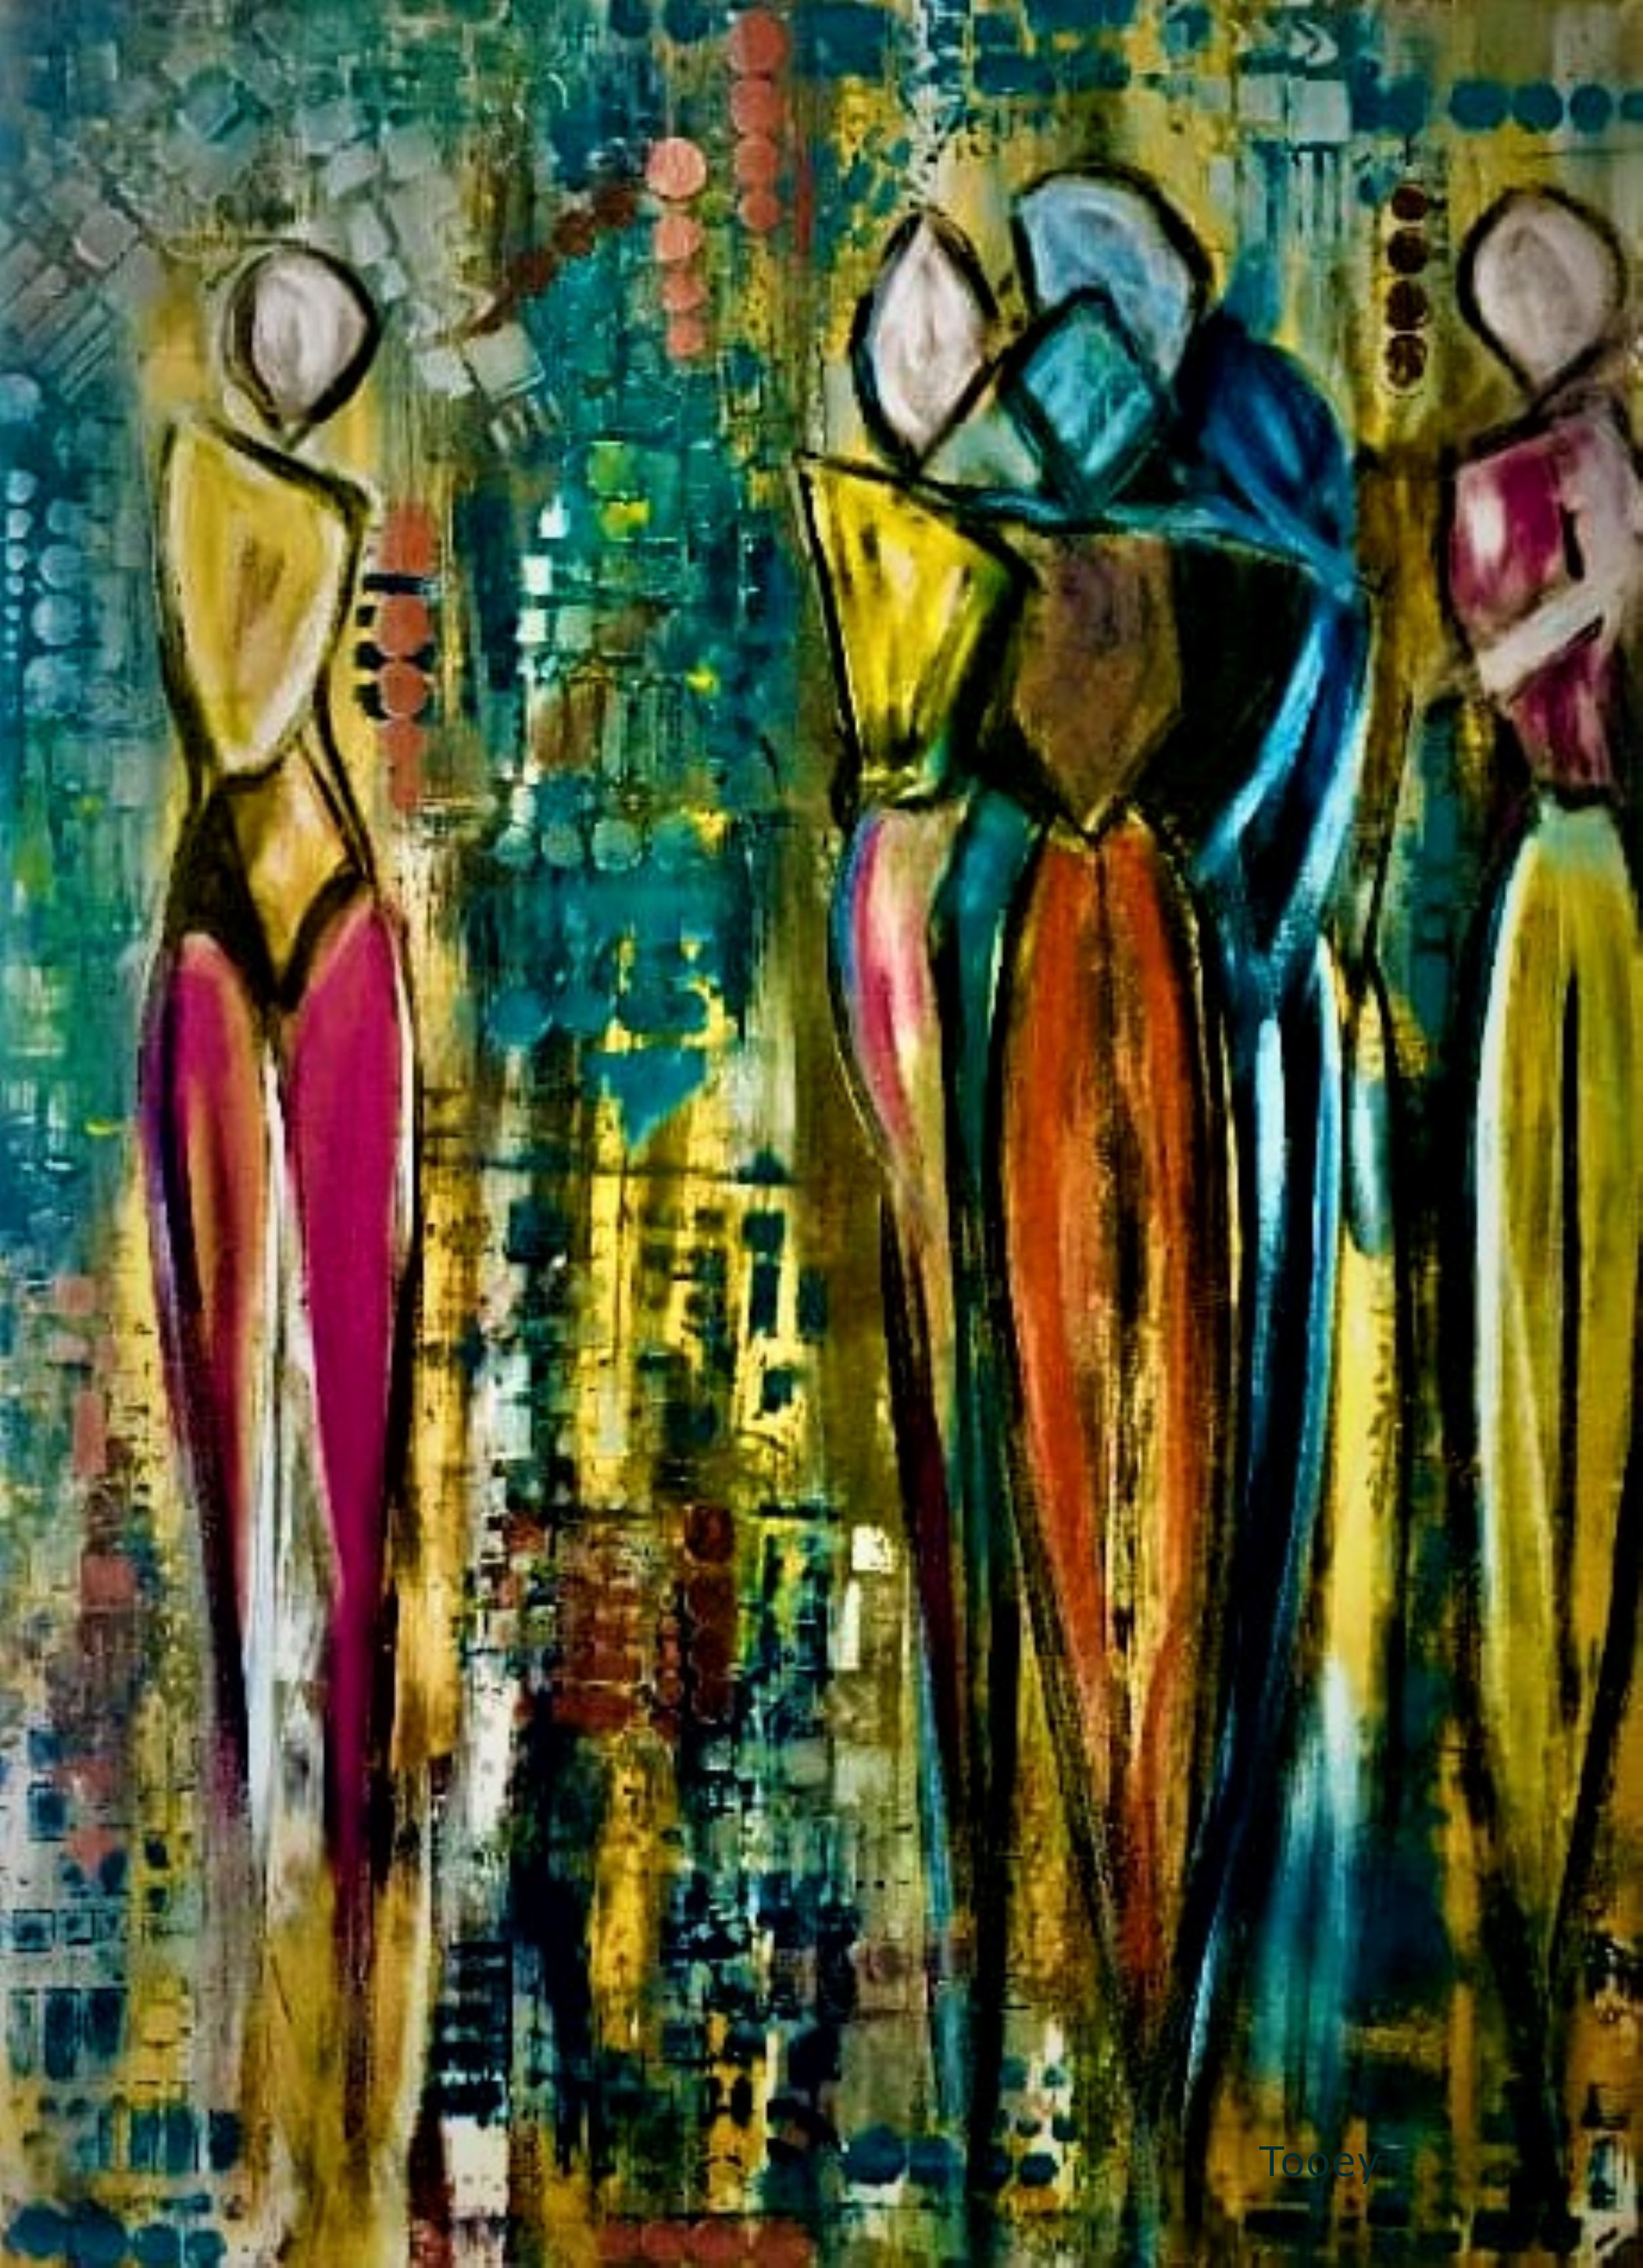 Party with My Friends artwork by Teresa Dorroh - art listed for sale on Artplode